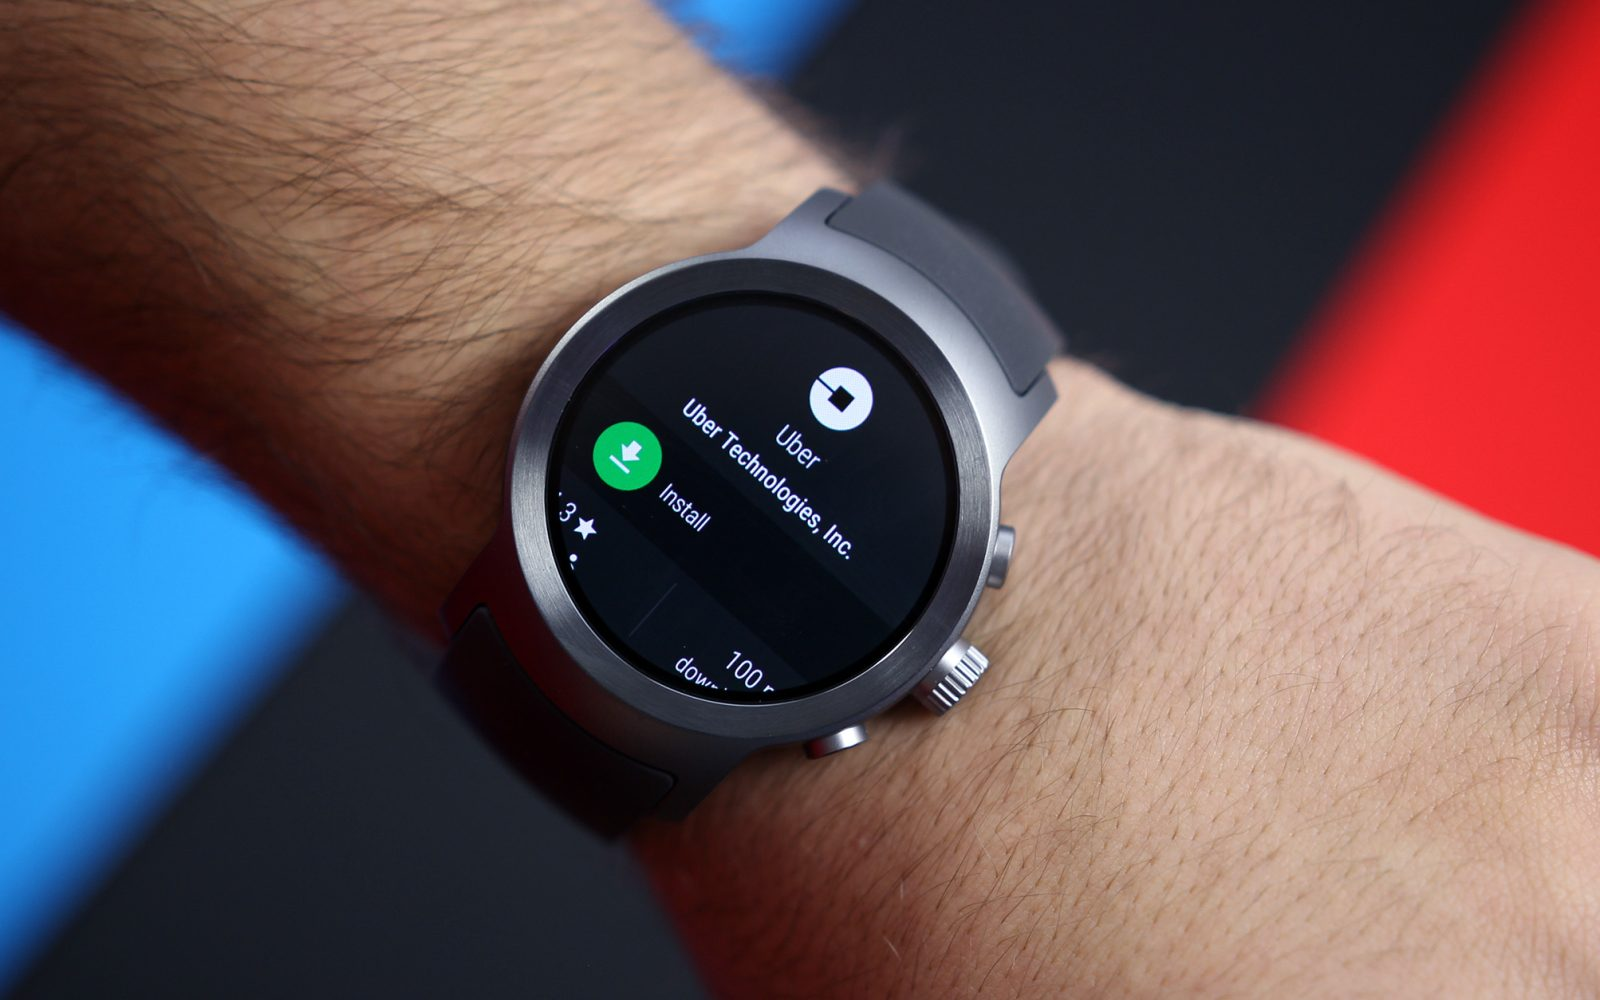 How to update your smartwatch to Android Wear 2 0 manually using OTA